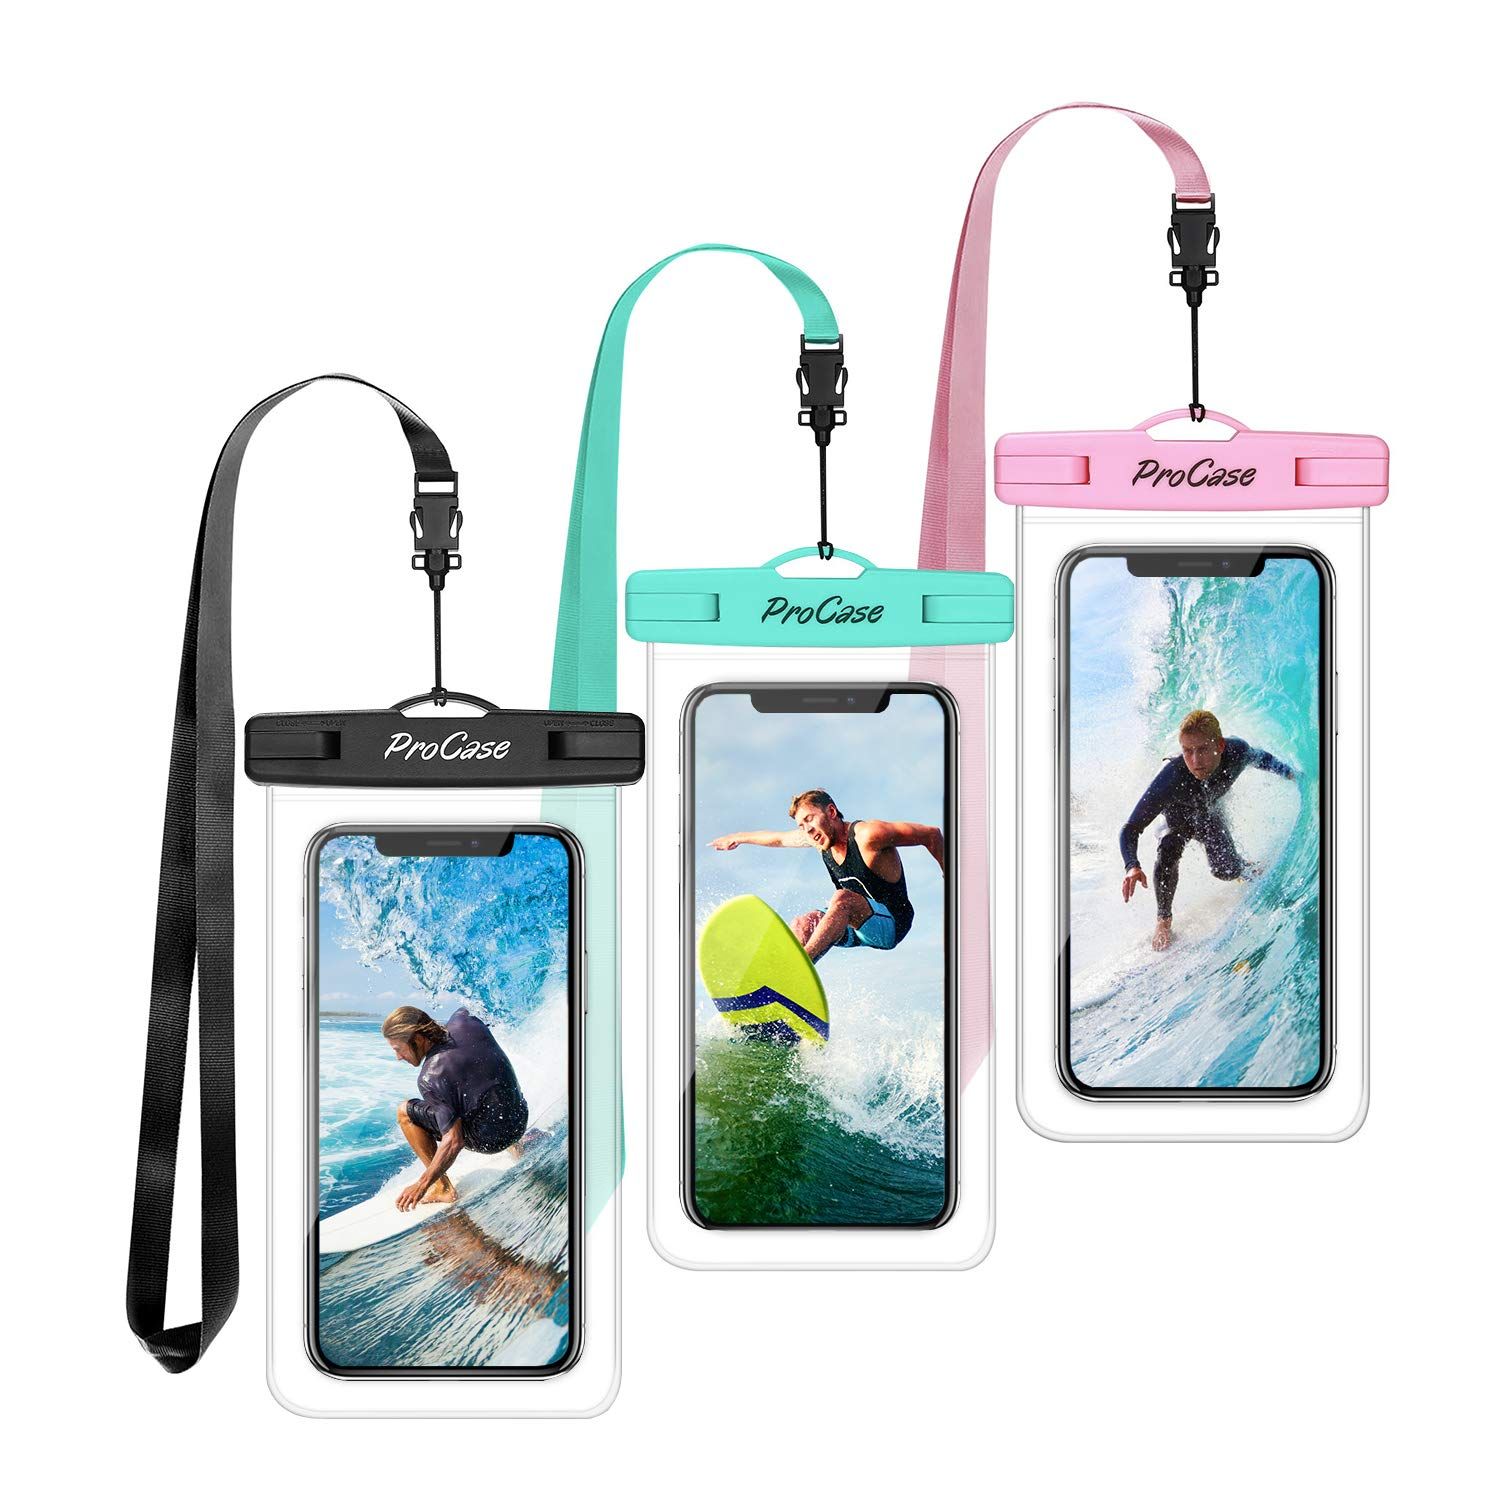 """Procase Universal Waterproof Pouch Cellphone Dry Bag Underwater Case for iPhone 11 Pro Max/Xs Max/XR/8/SE 2020, Galaxy S20 Ultra/ S20+/Note10+ S9 S8+, Pixel up to 6.9"""" -3 Pack, Teal/Pink/Black"""